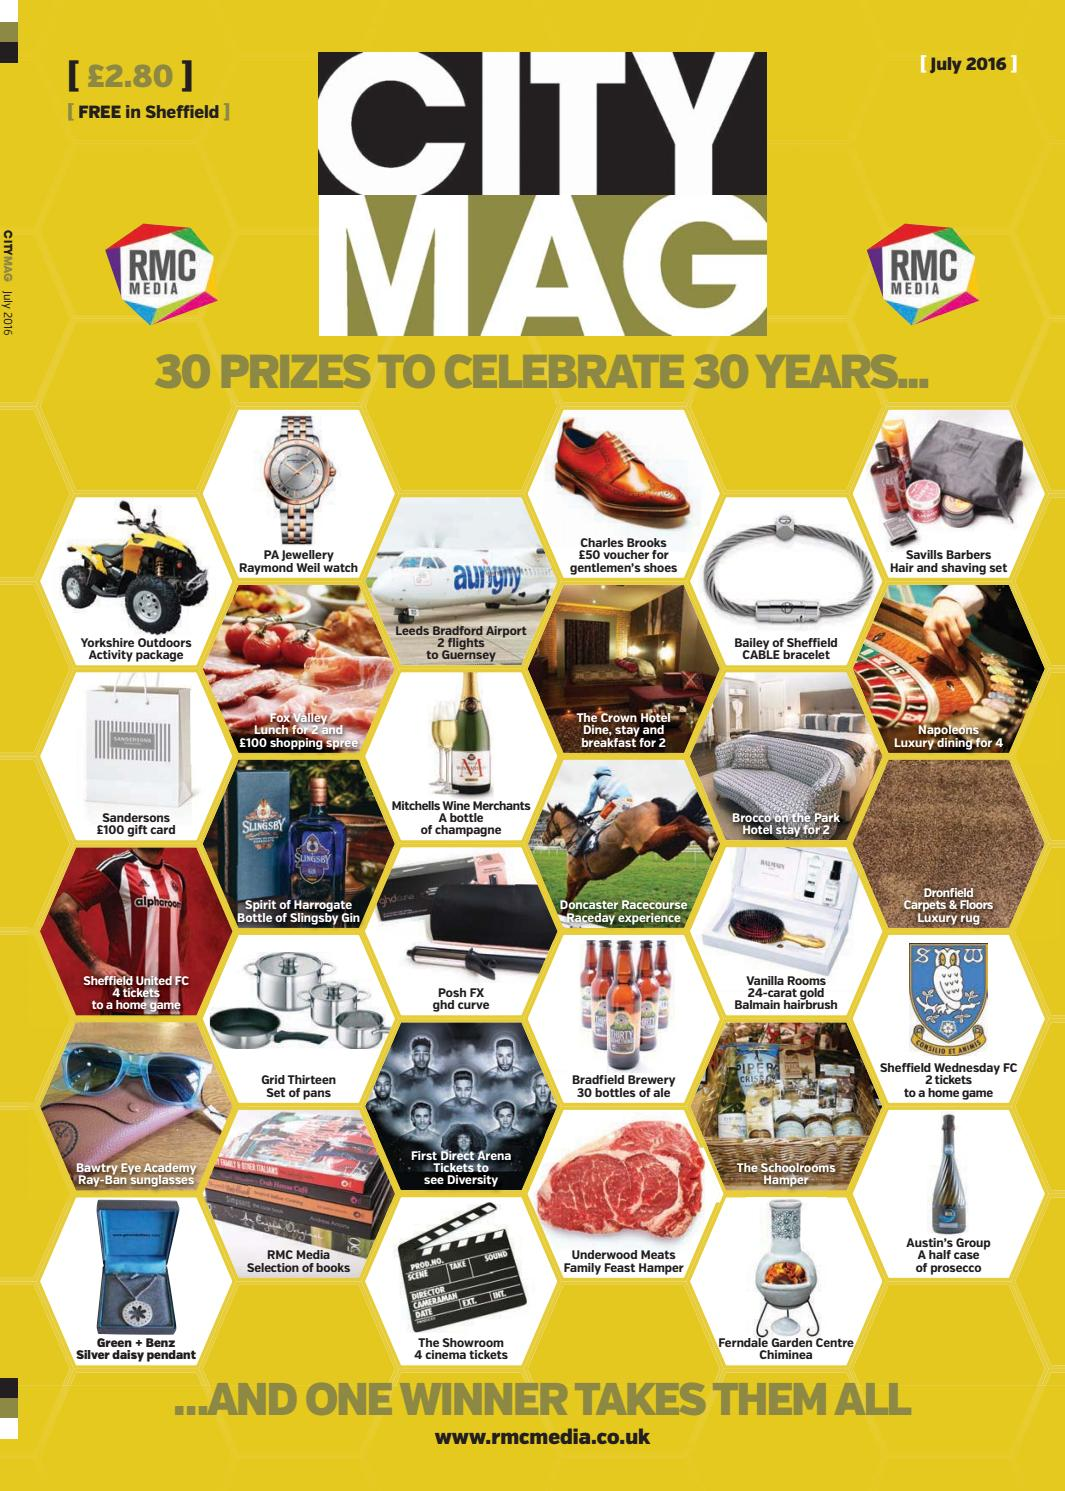 9bb8e87a15 City July 2016 by RMC Media - issuu